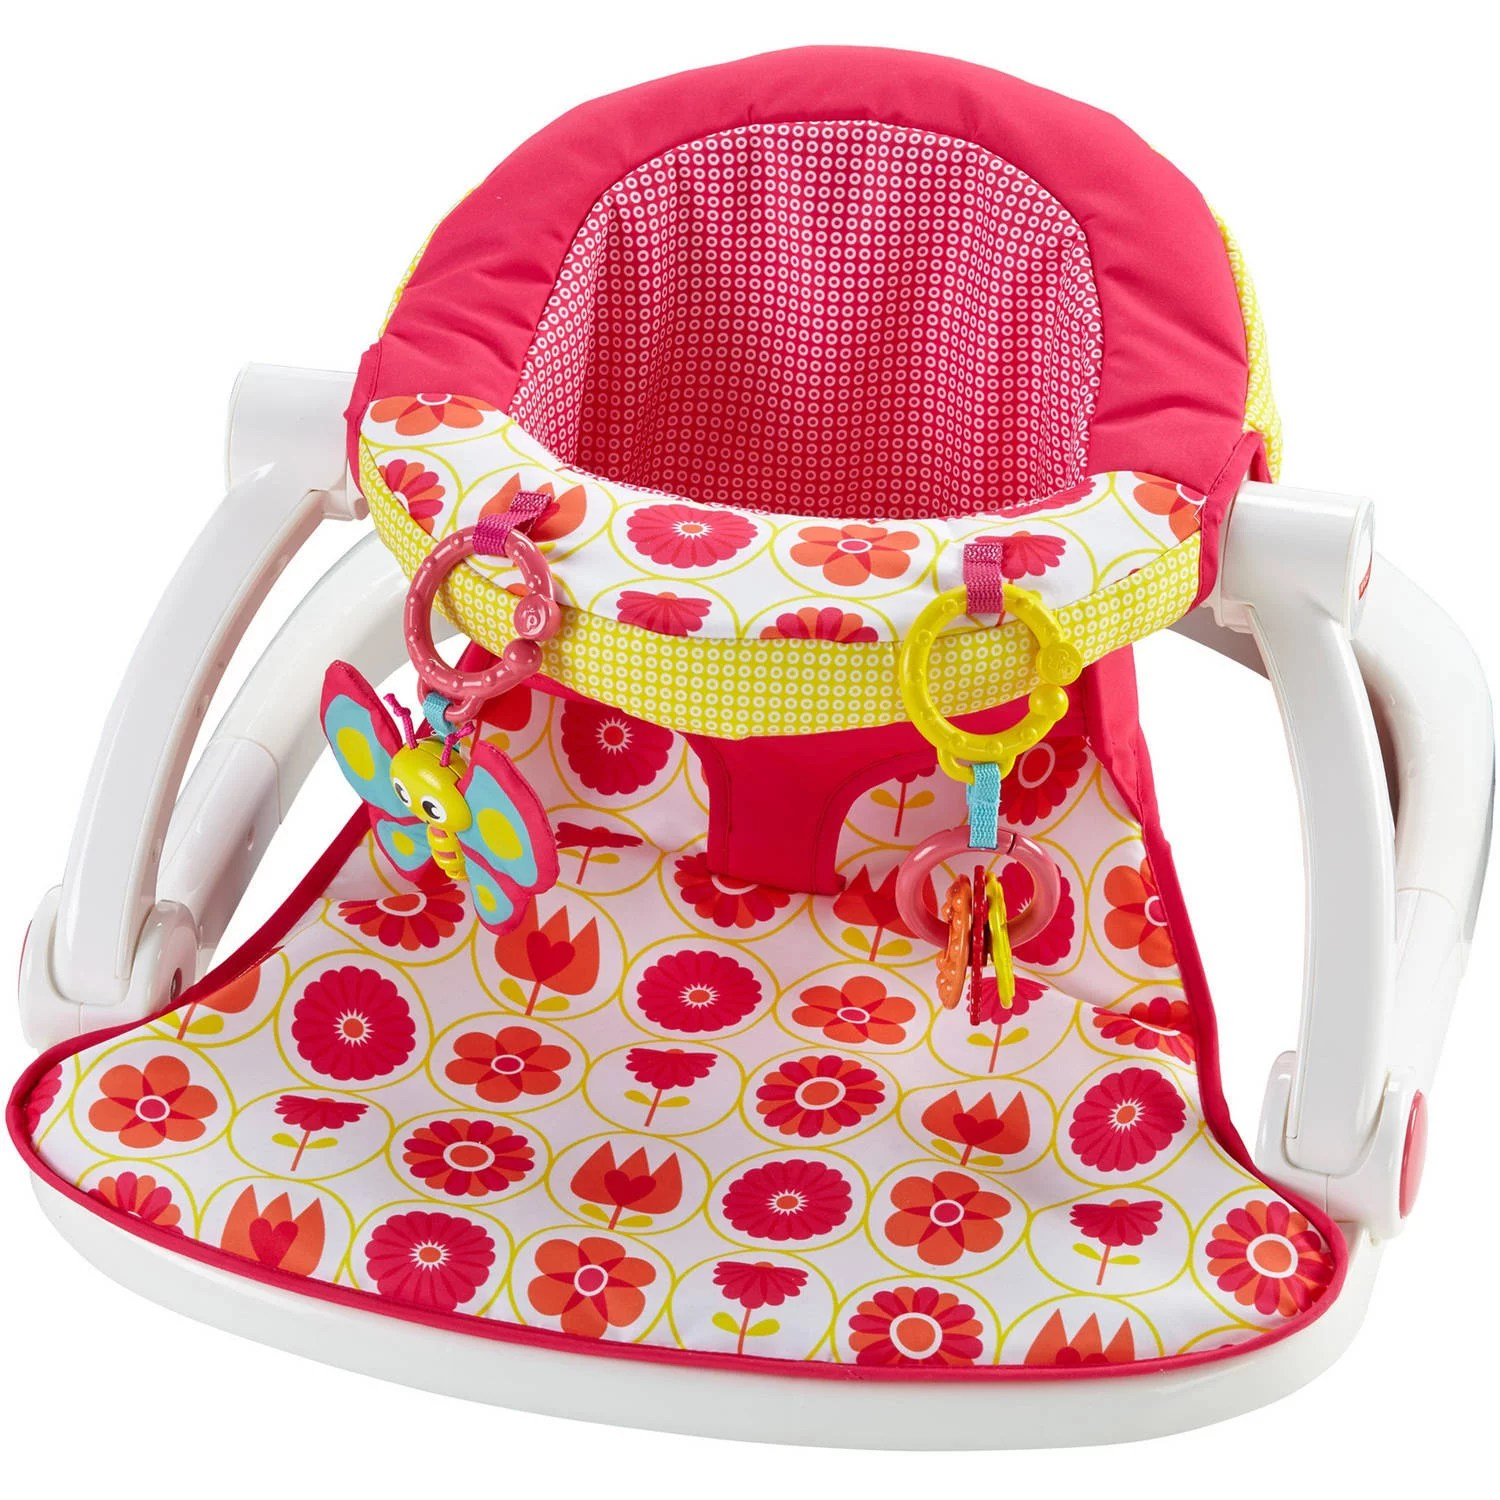 Fisher Price Sit Me Up Floor Seat Girl Toys Pink Baby Seat